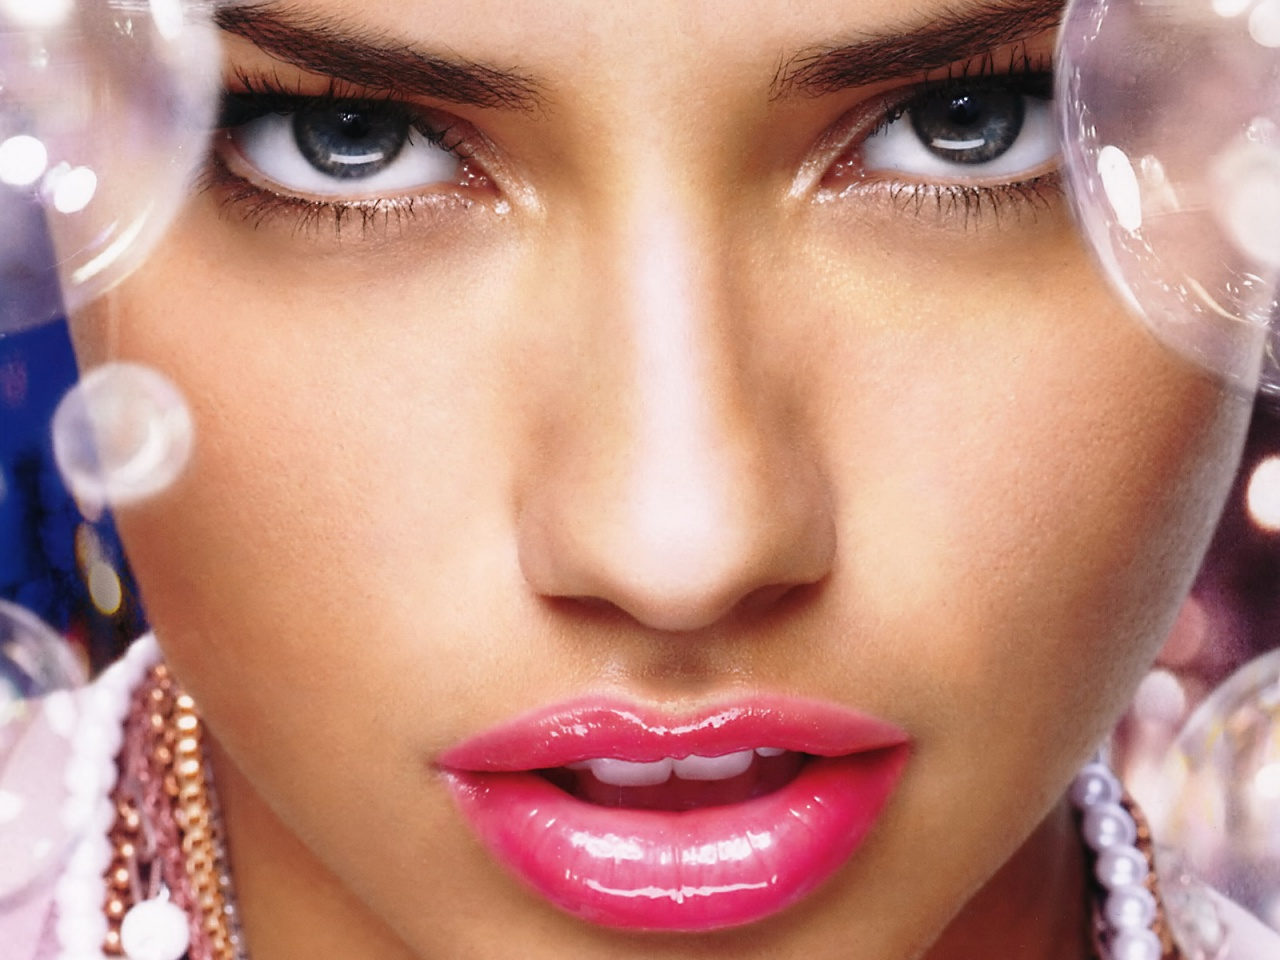 adriana lima pretty lips wallpapers in jpg format for free download